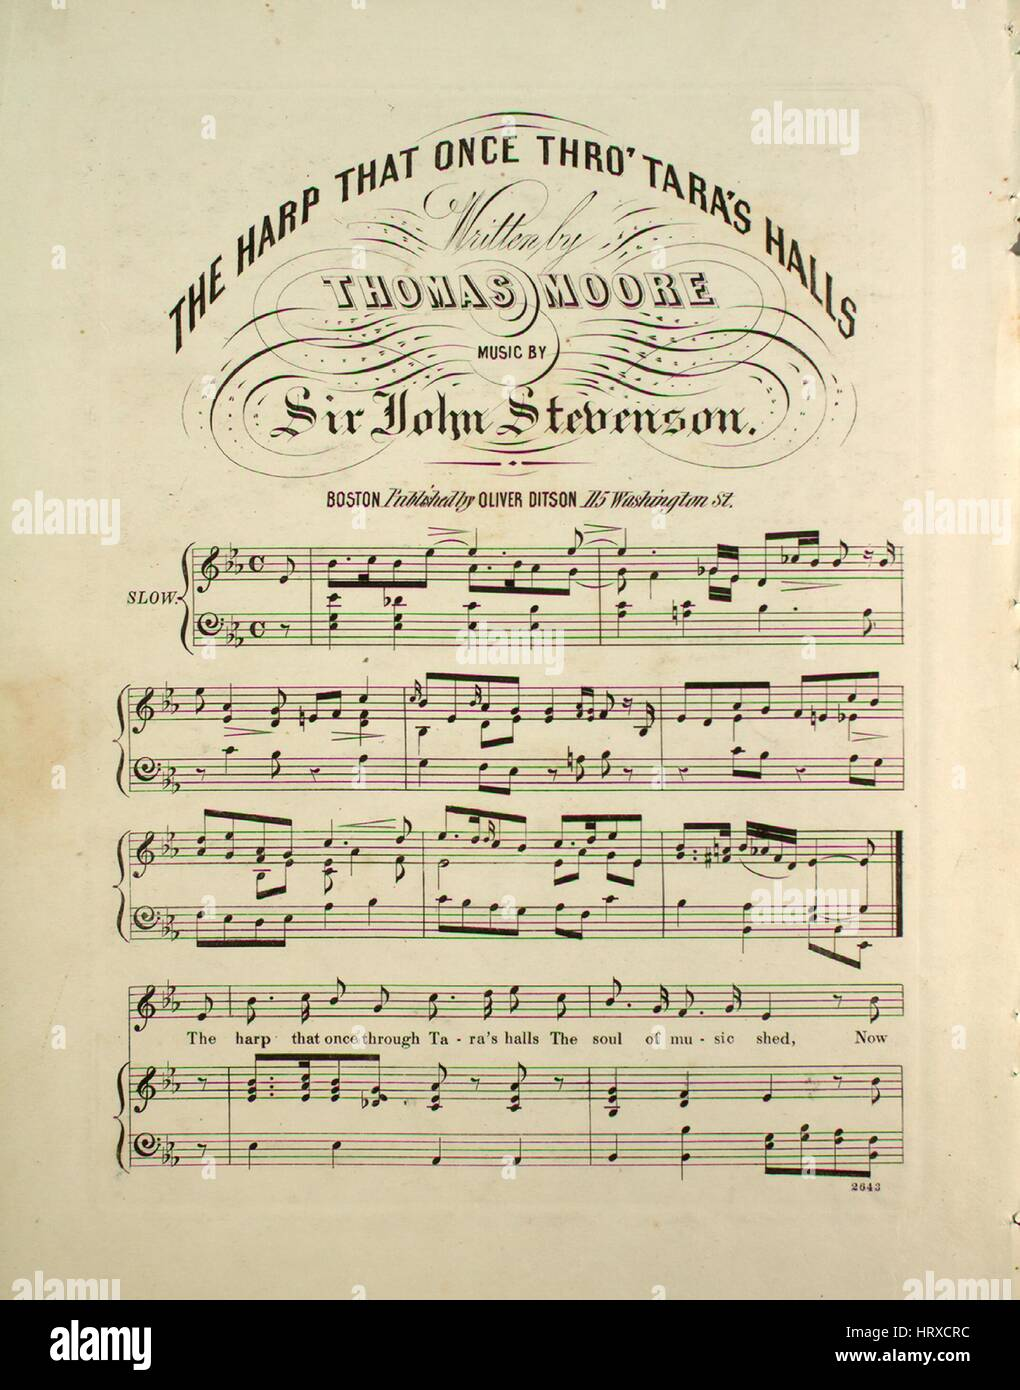 Sheet music cover image of the song 'The Harp That Once Thro' Tara's Halls', with original authorship - Stock Image